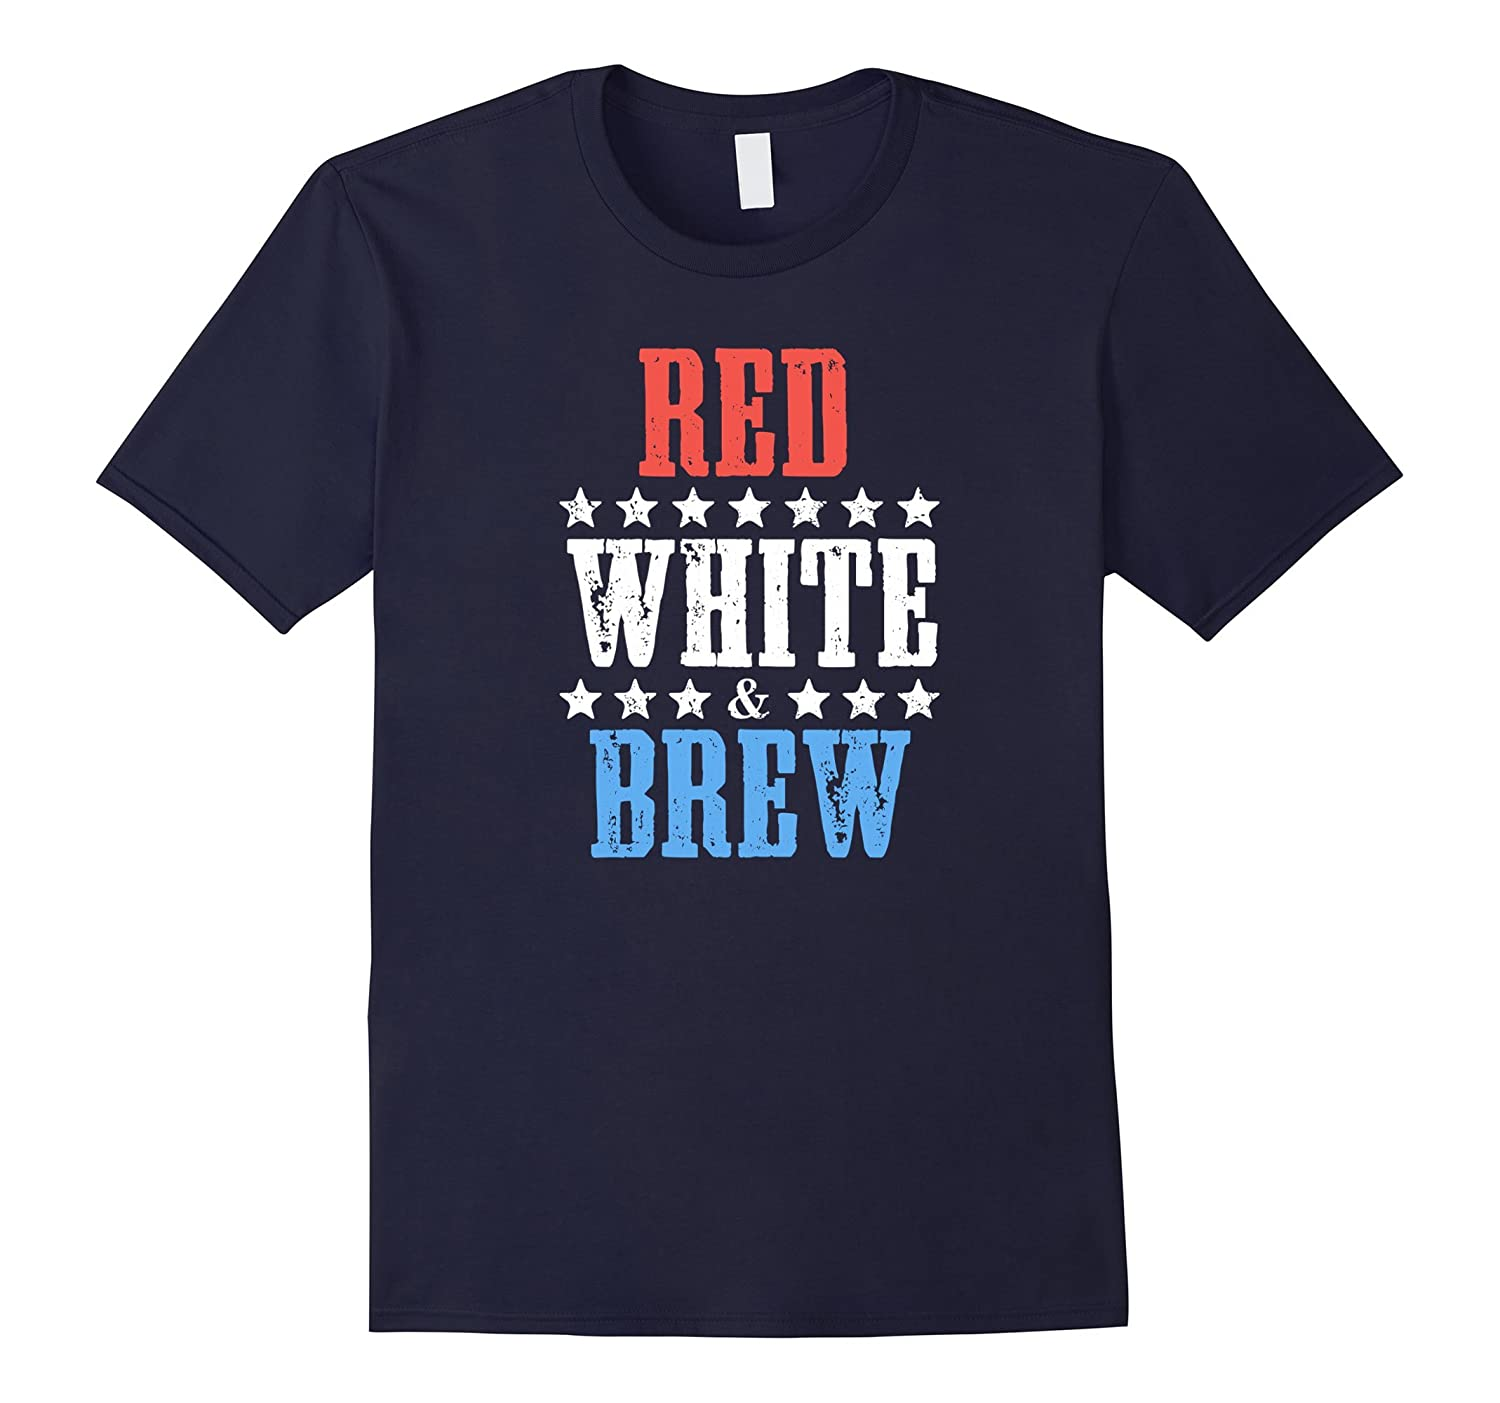 Red White & Brew Funny 4th of July Party Beer T-shirt-CL